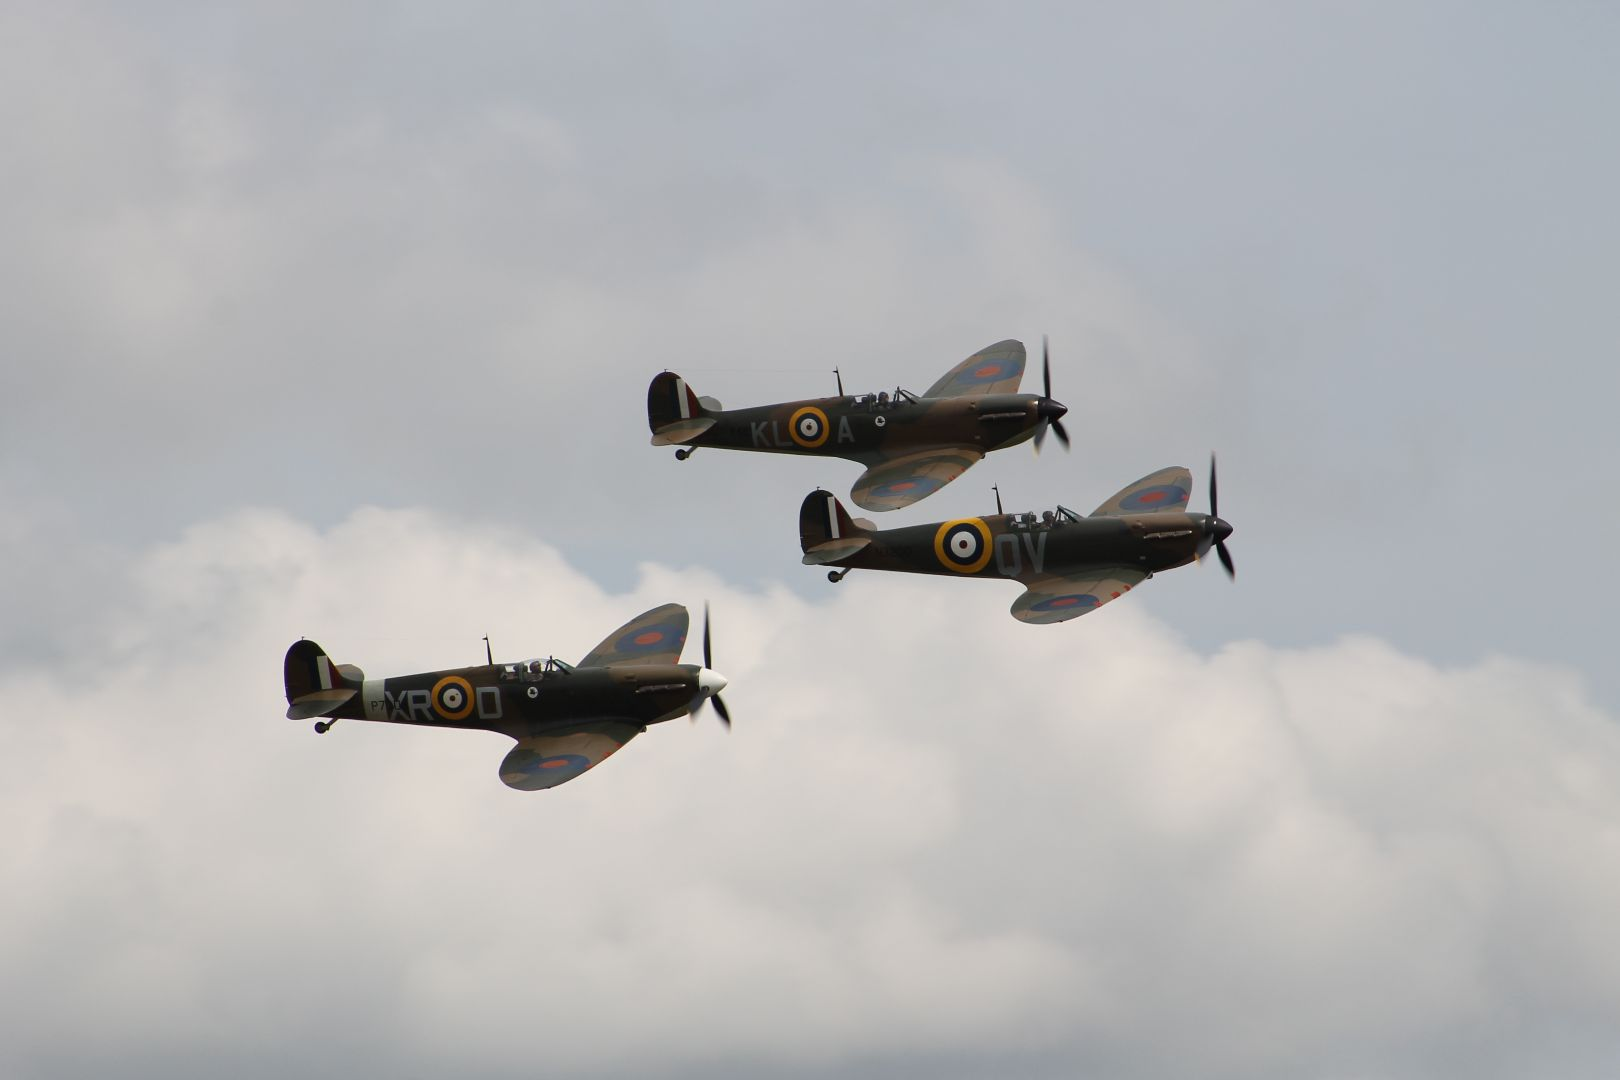 Three Spitfires at Flying legends